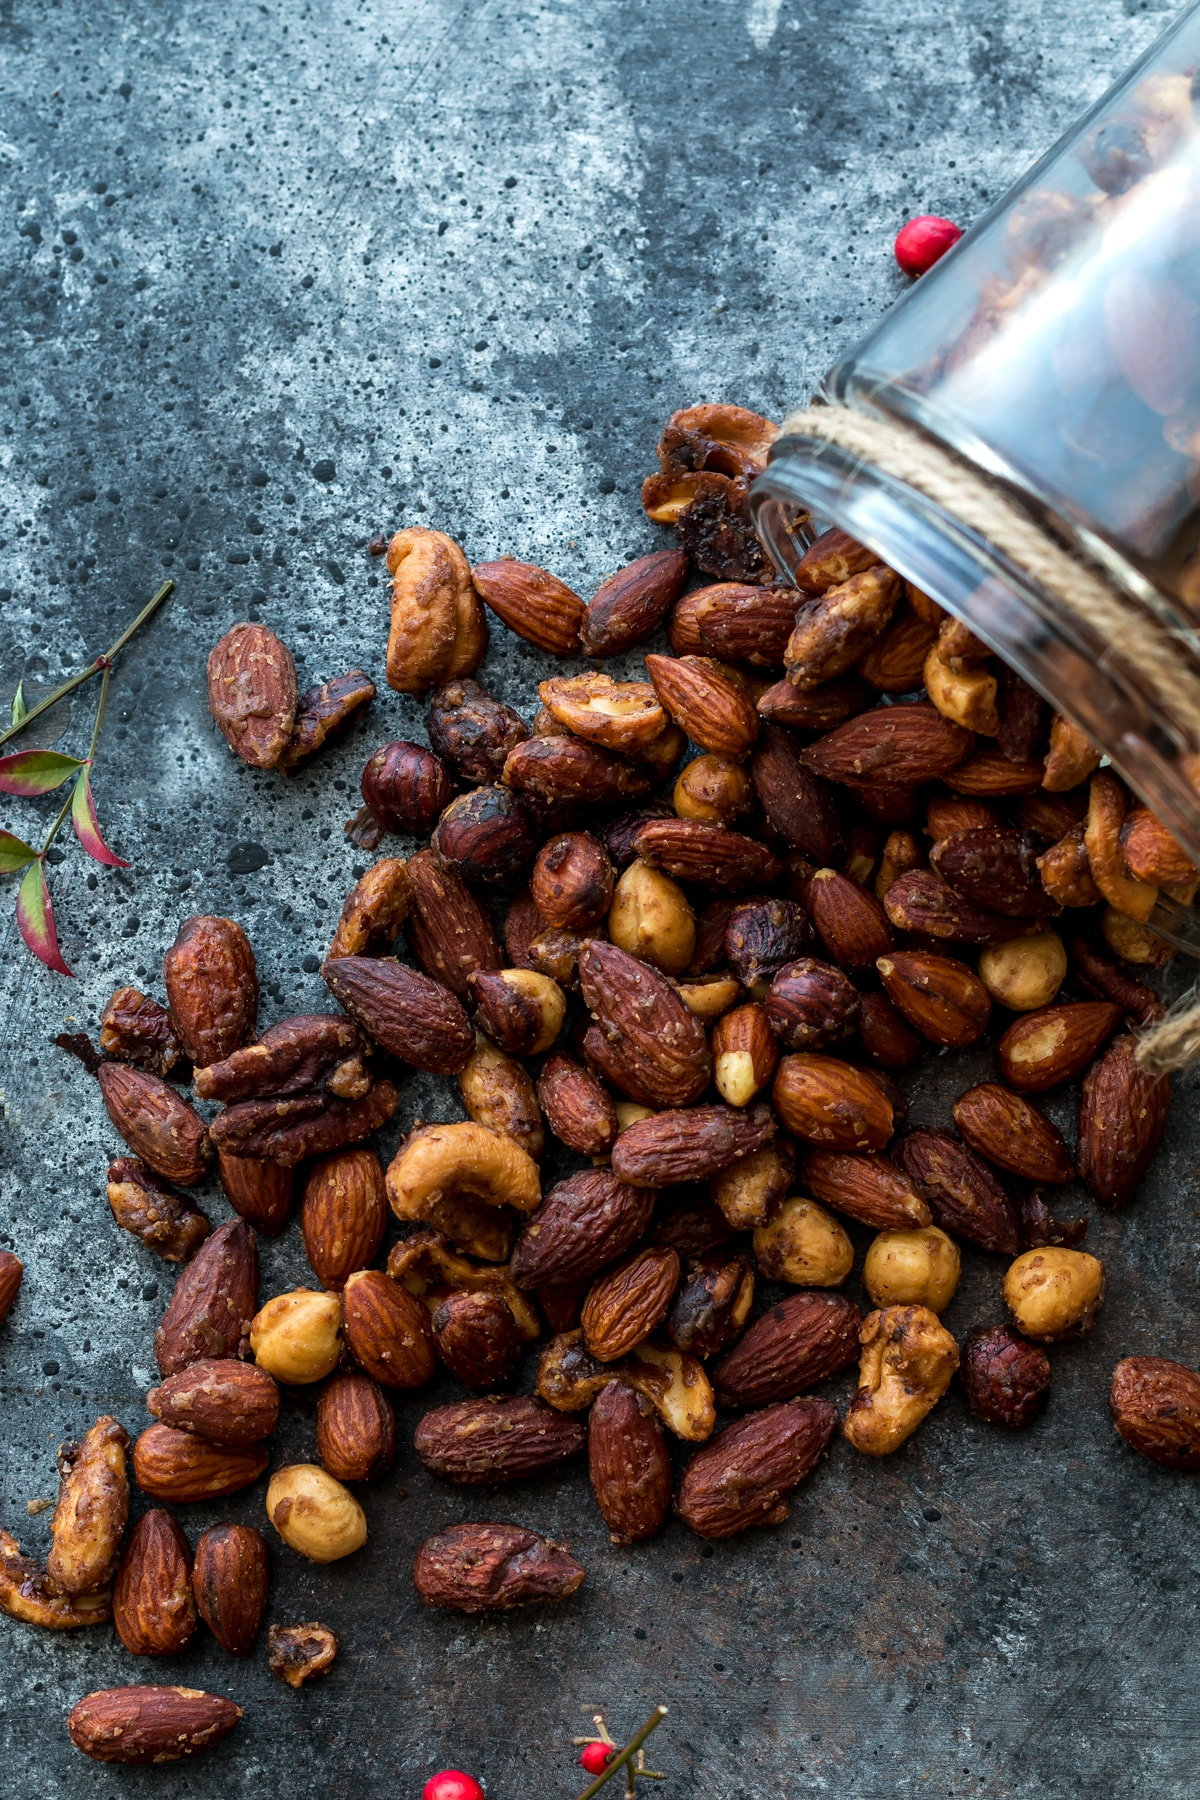 Slow Cooker Spiced Nuts from poshjournal.com on foodiecrush.com